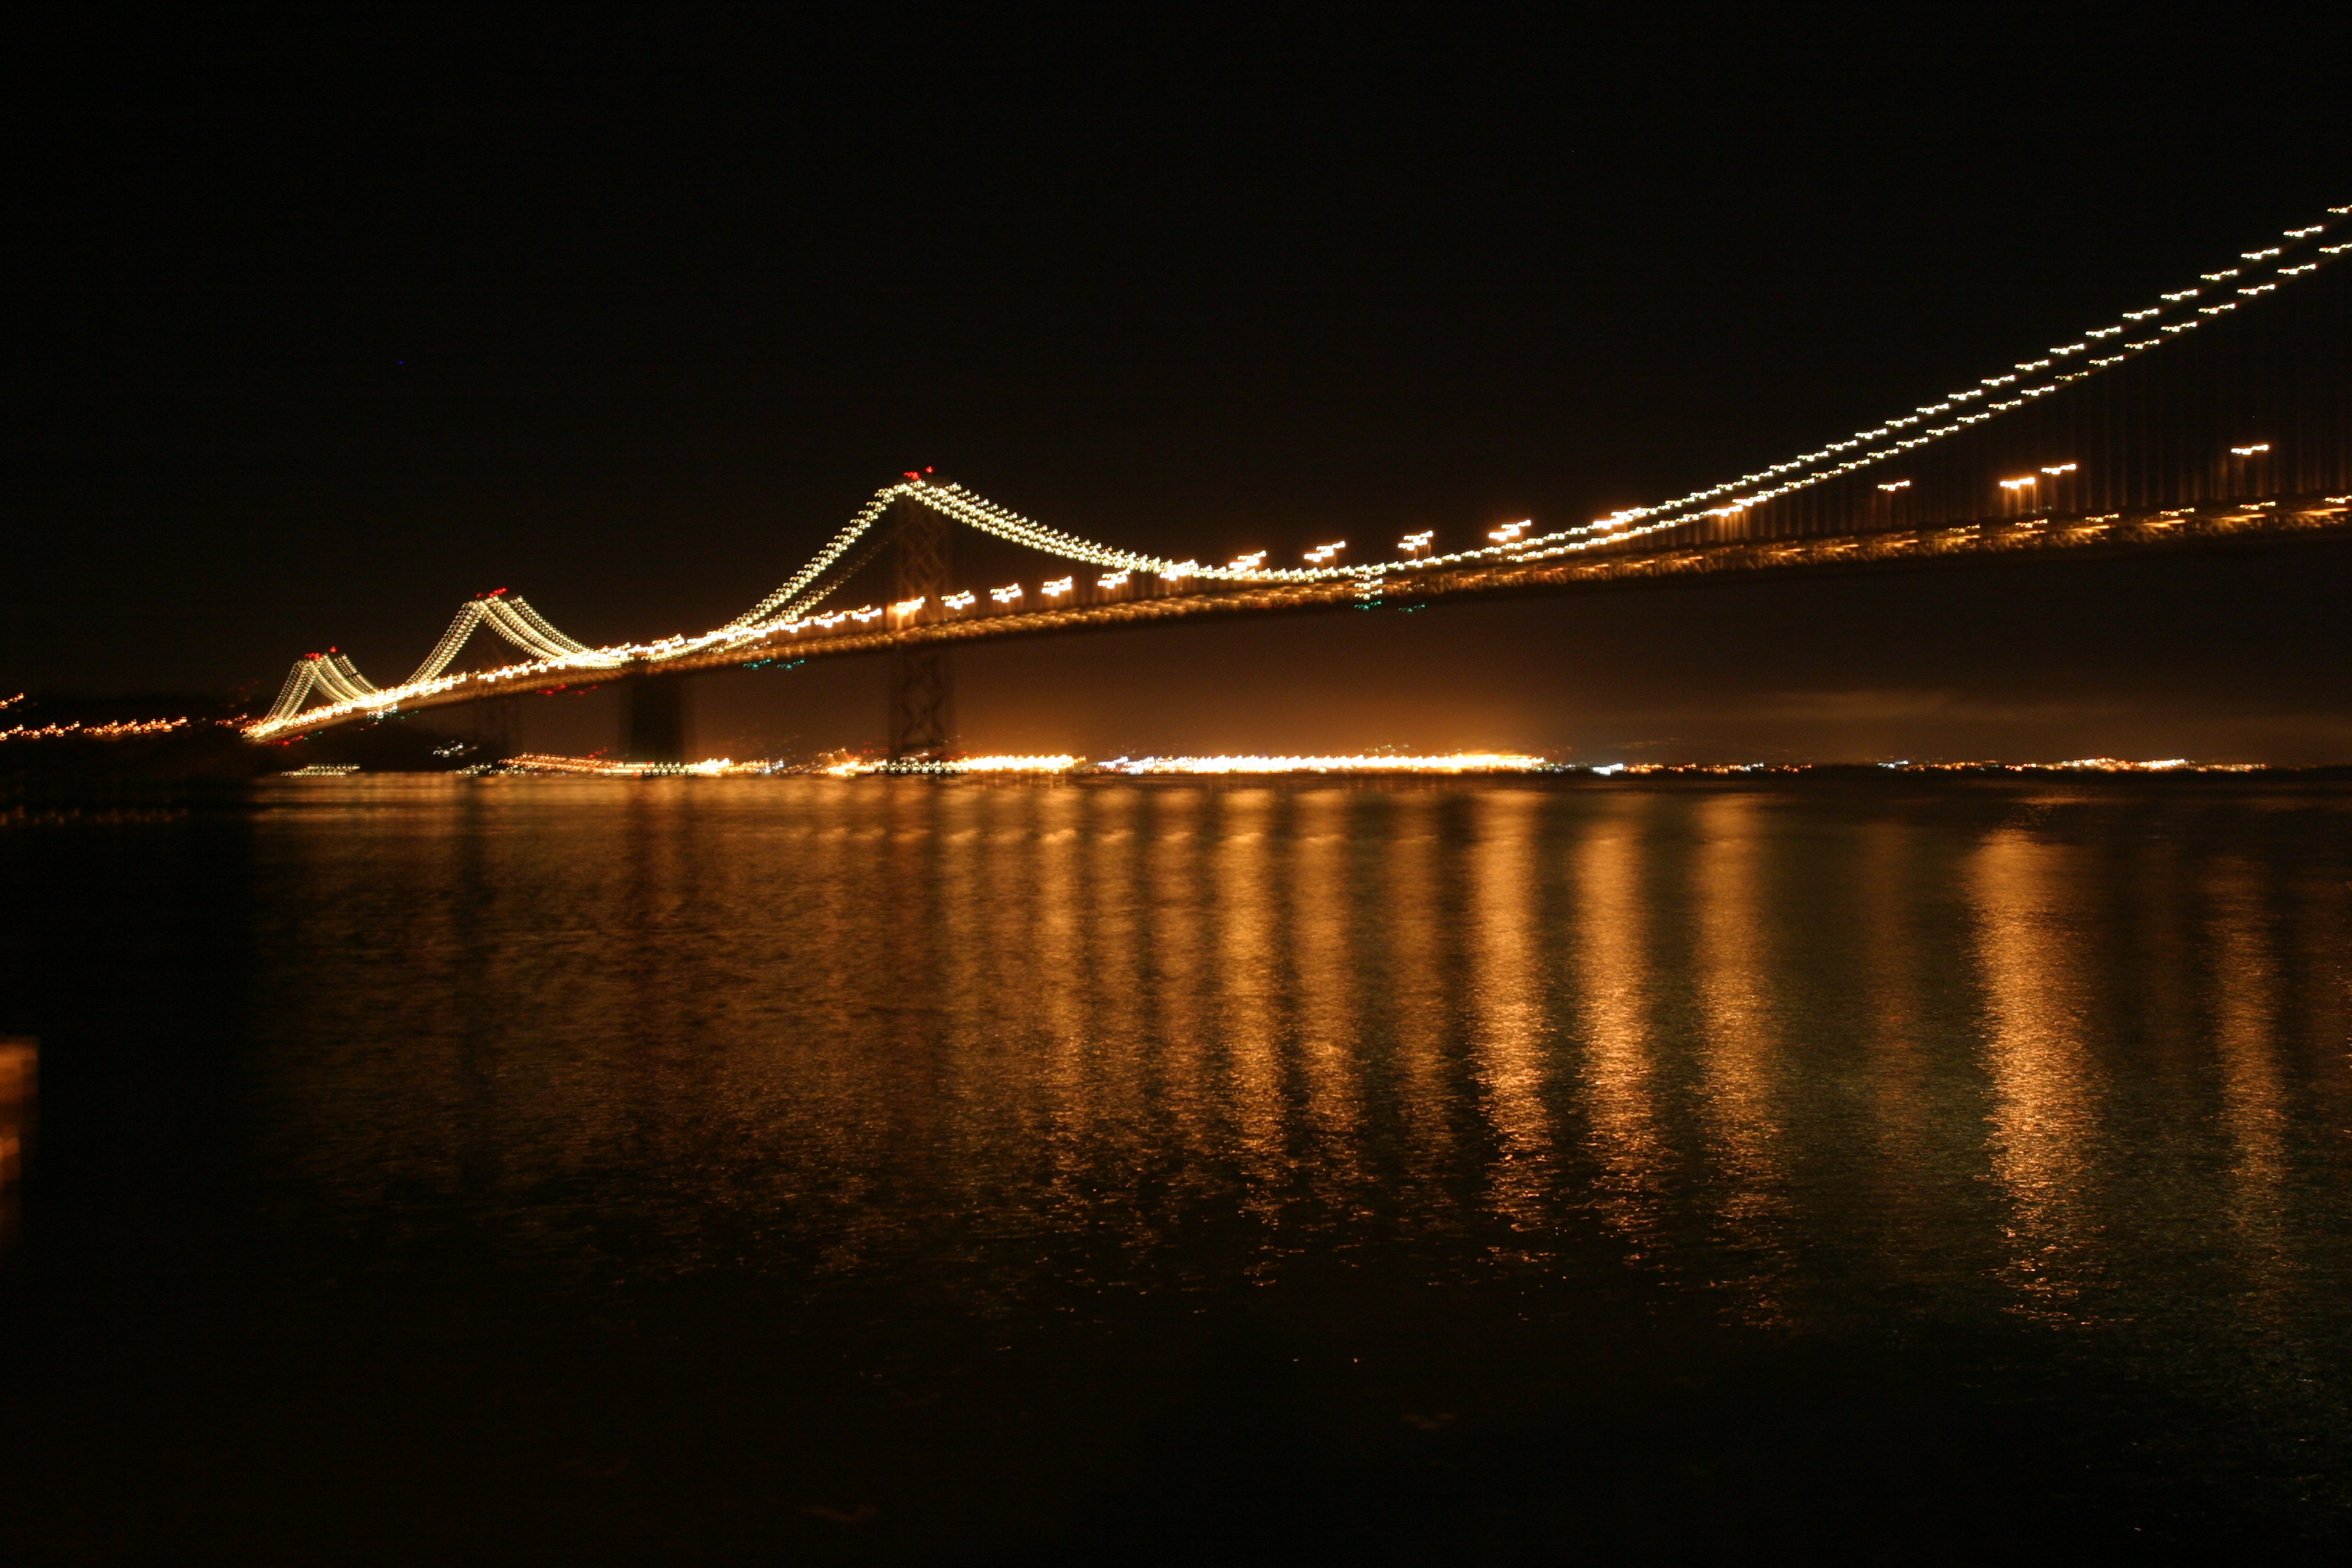 Bay Bridge and water reflections